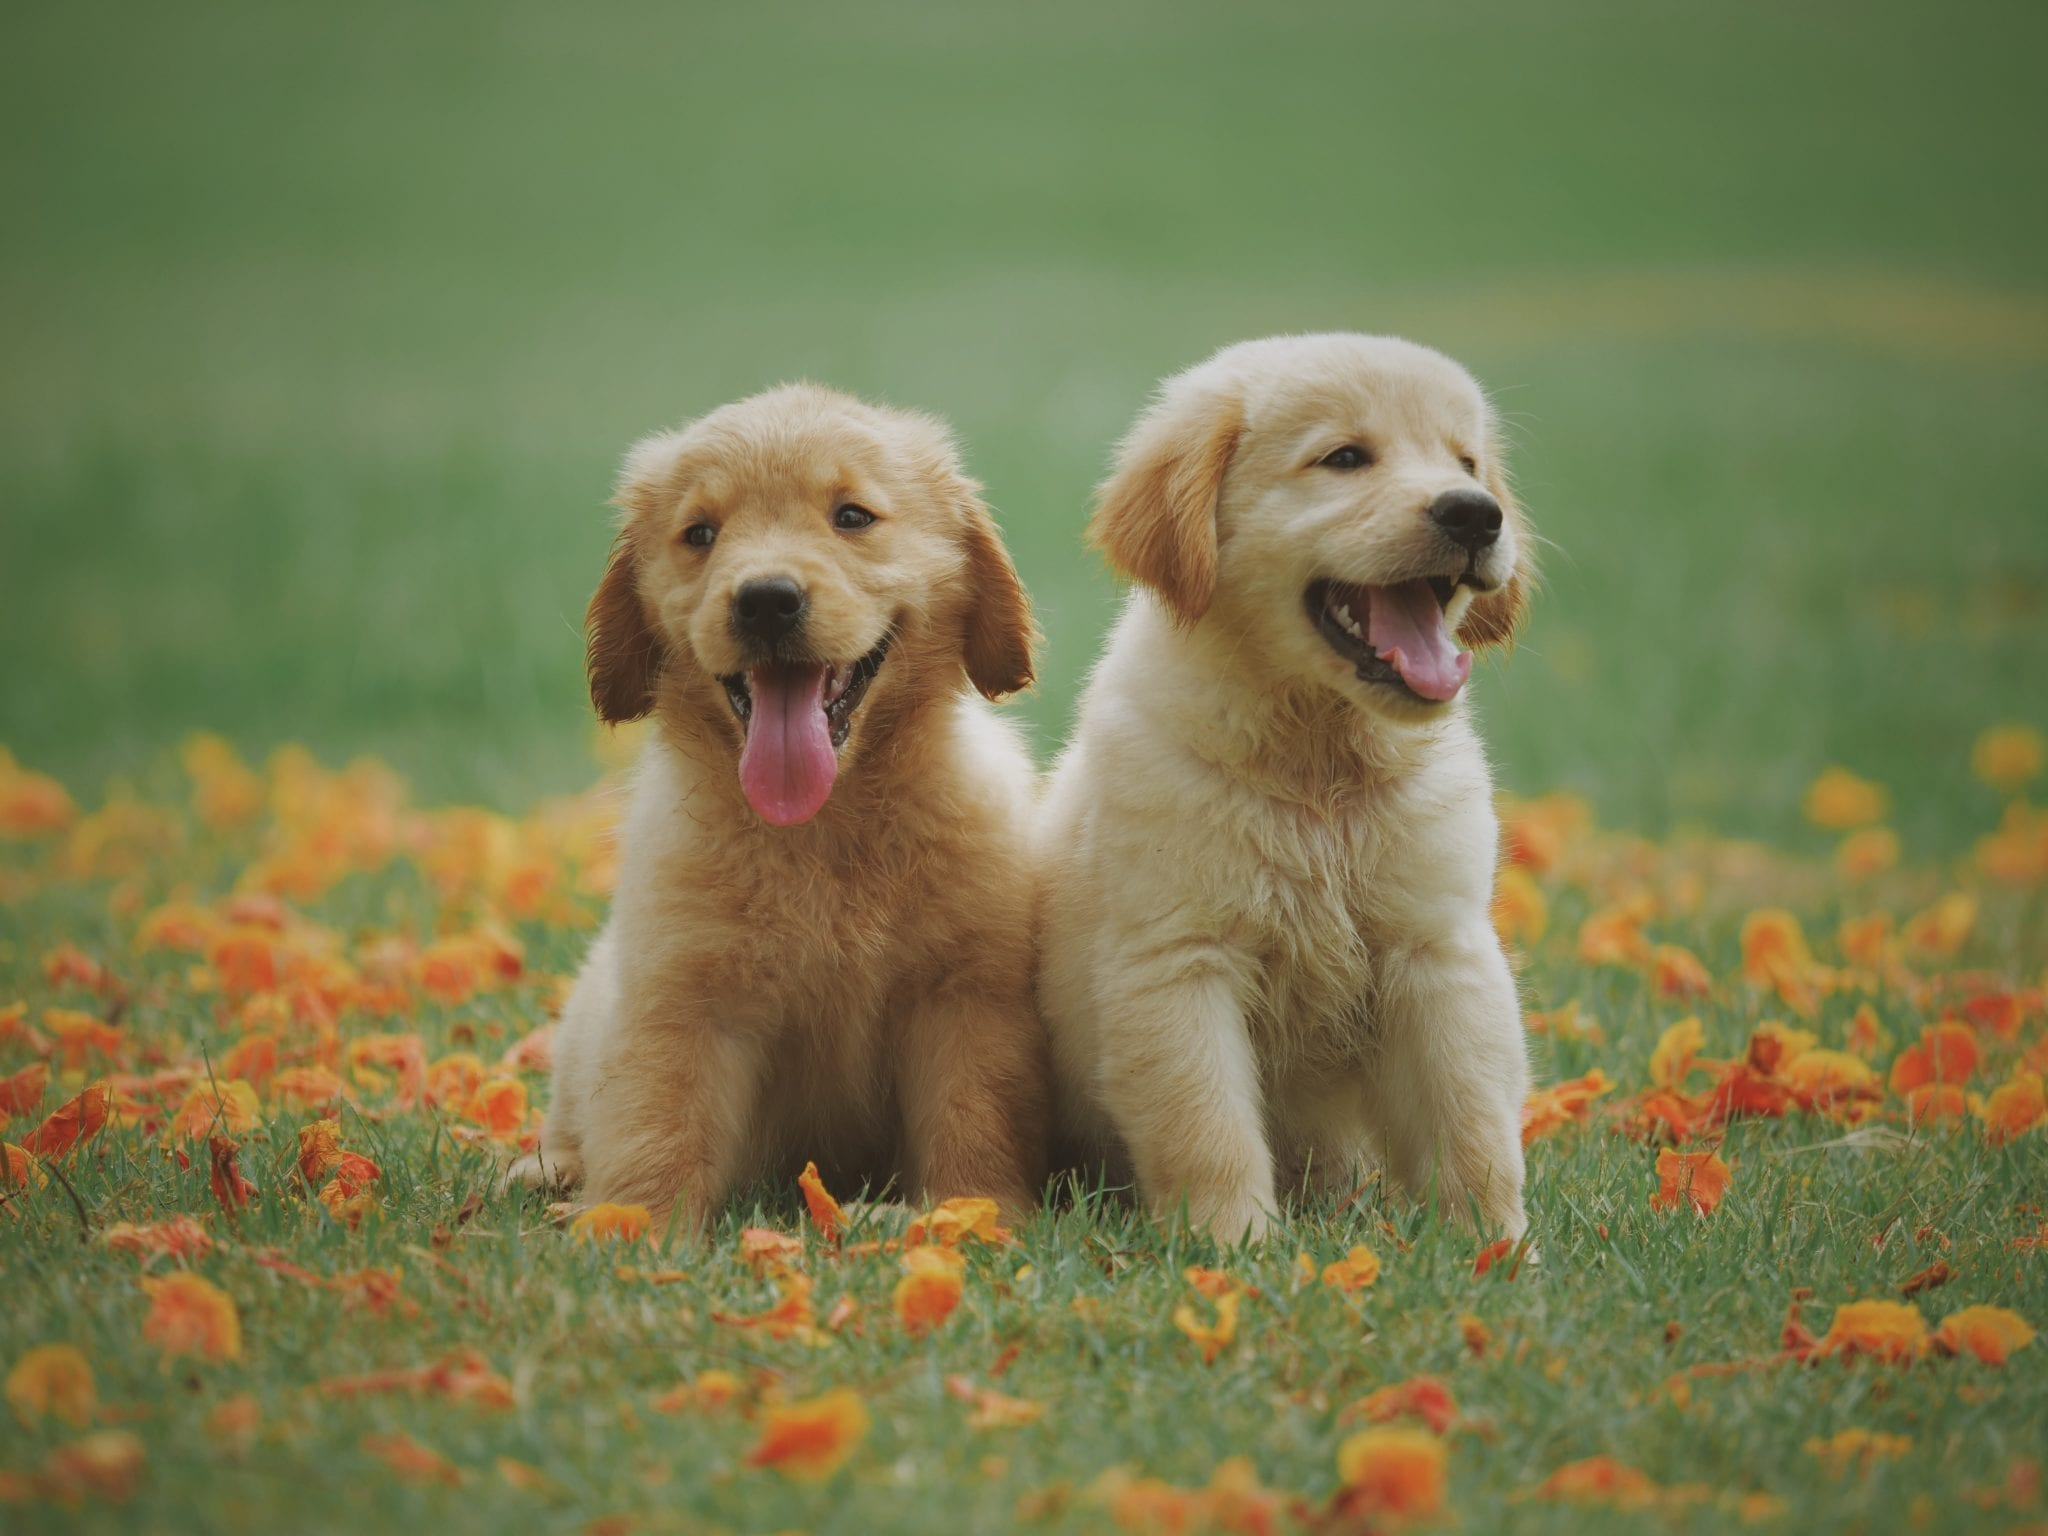 Puppy play groups provide mental & physical exercise